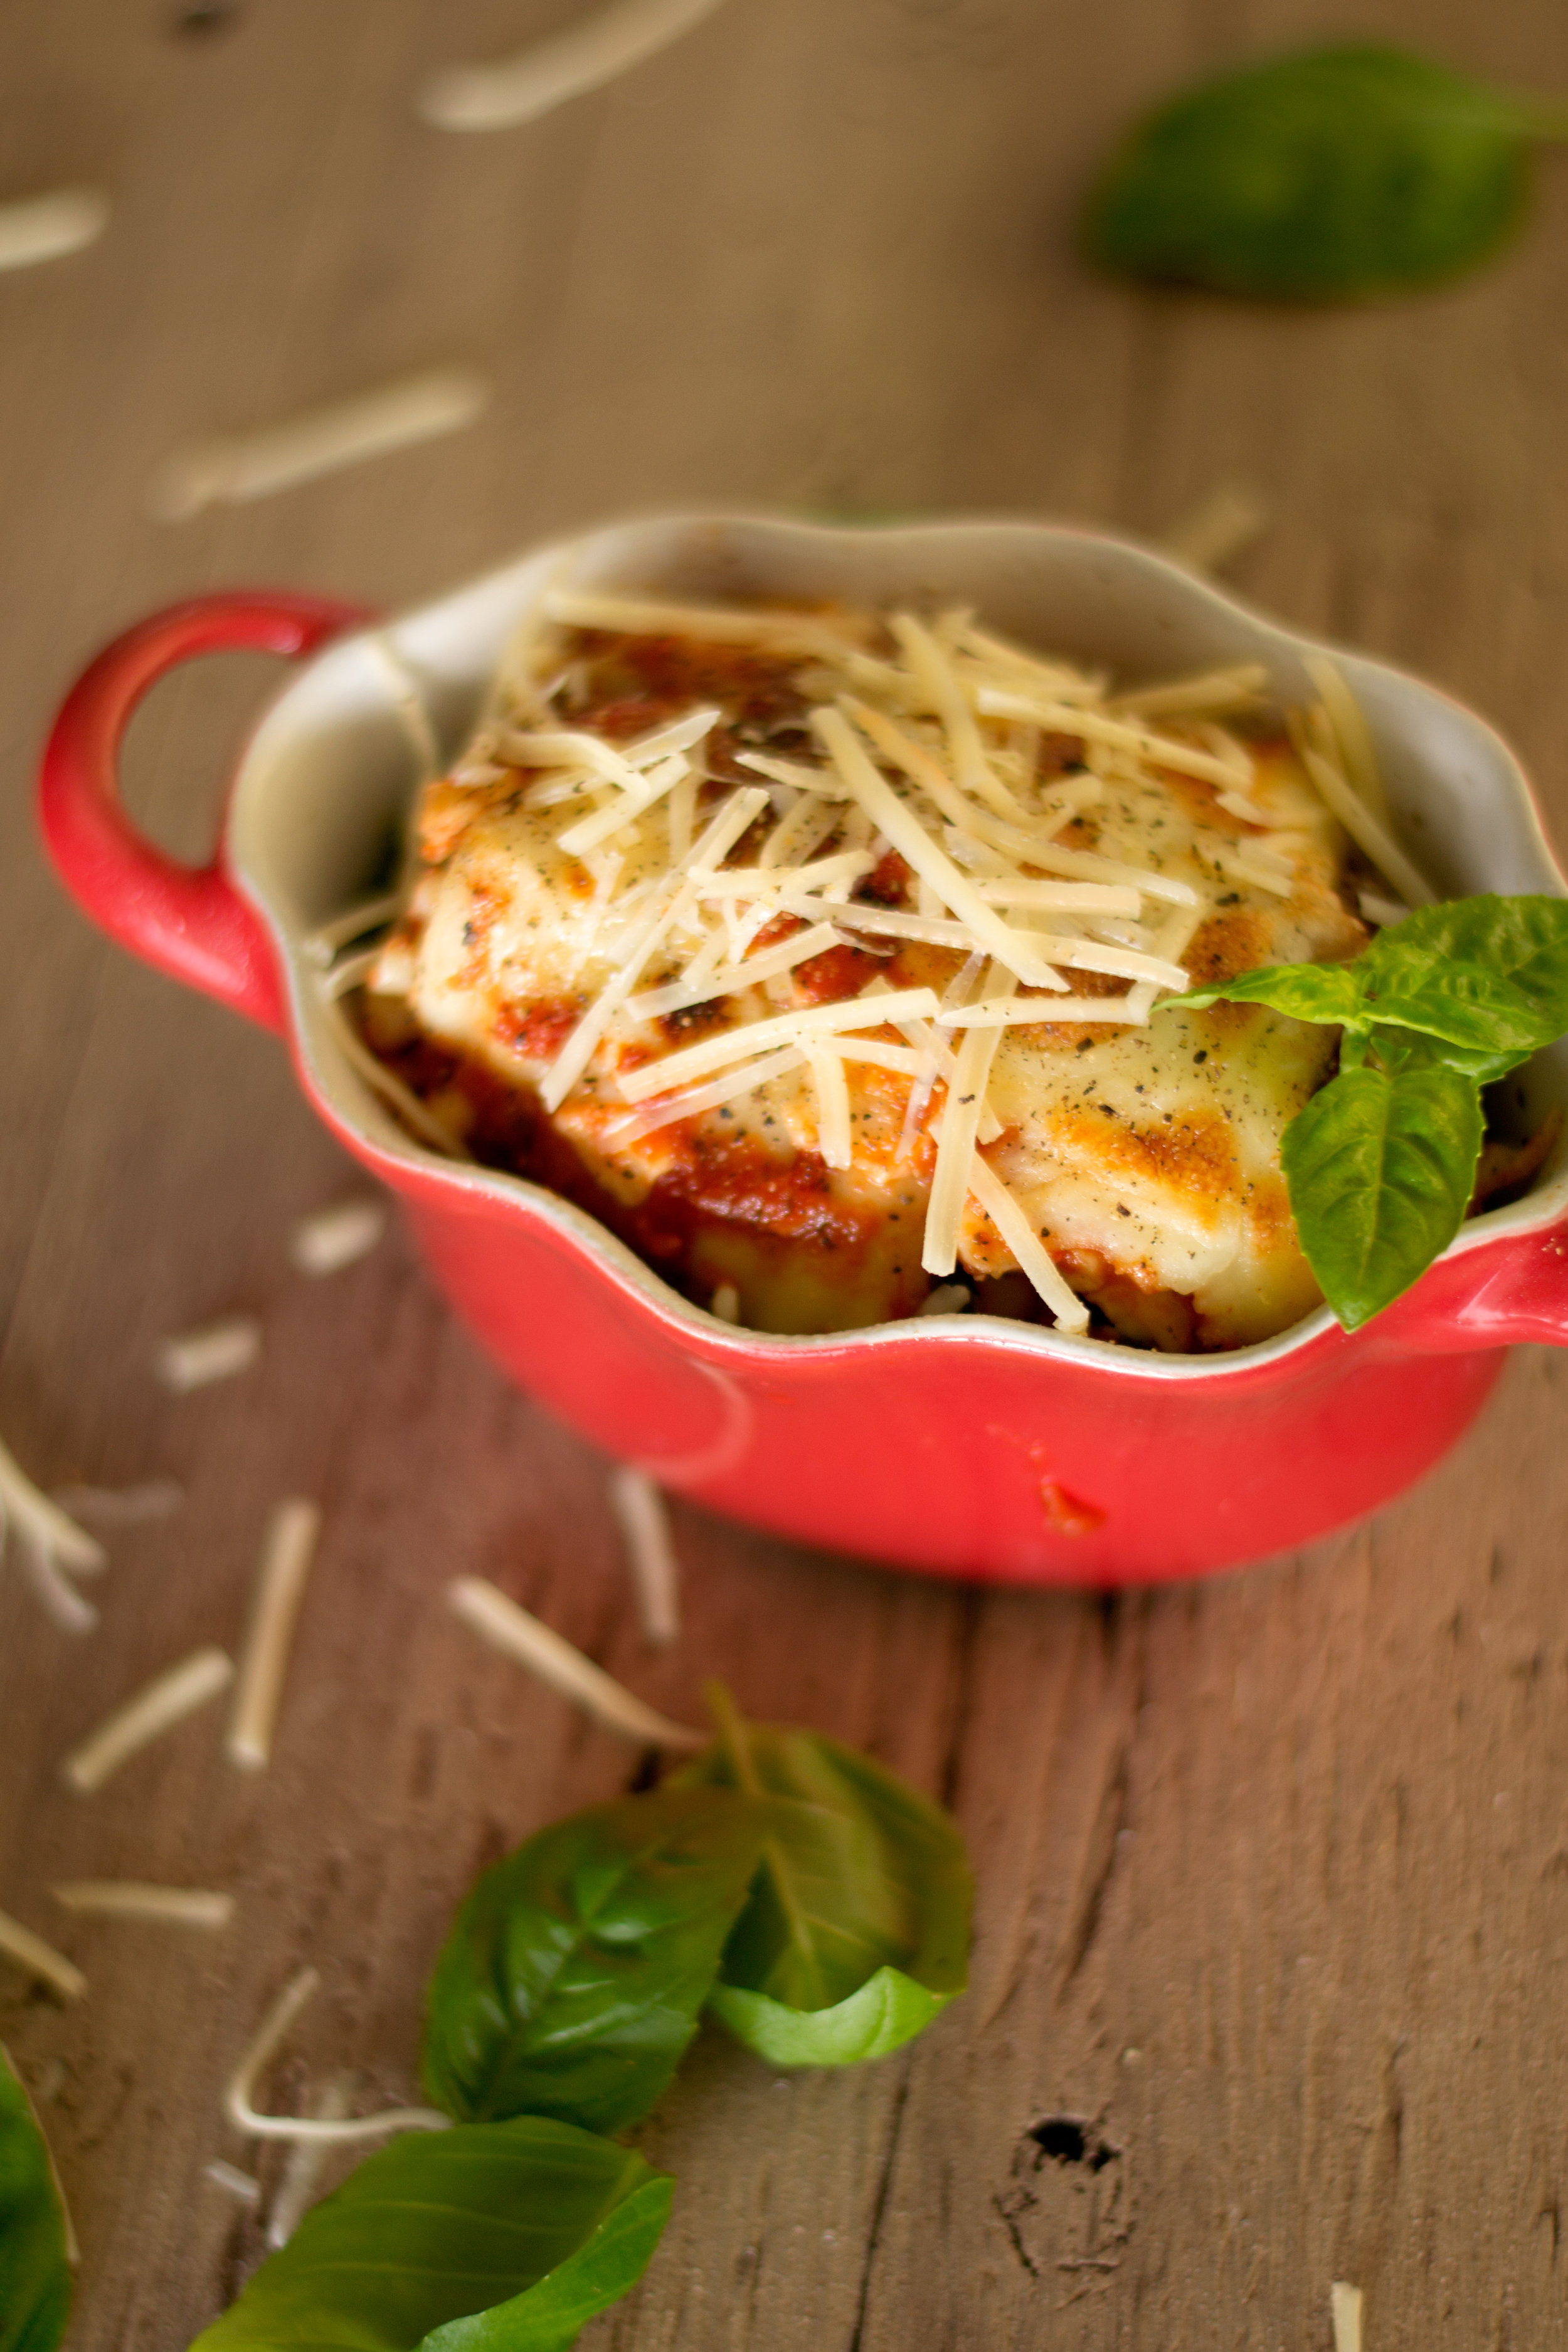 Copy of Garden-Veggie-Lasagna-with-Salad.jpg